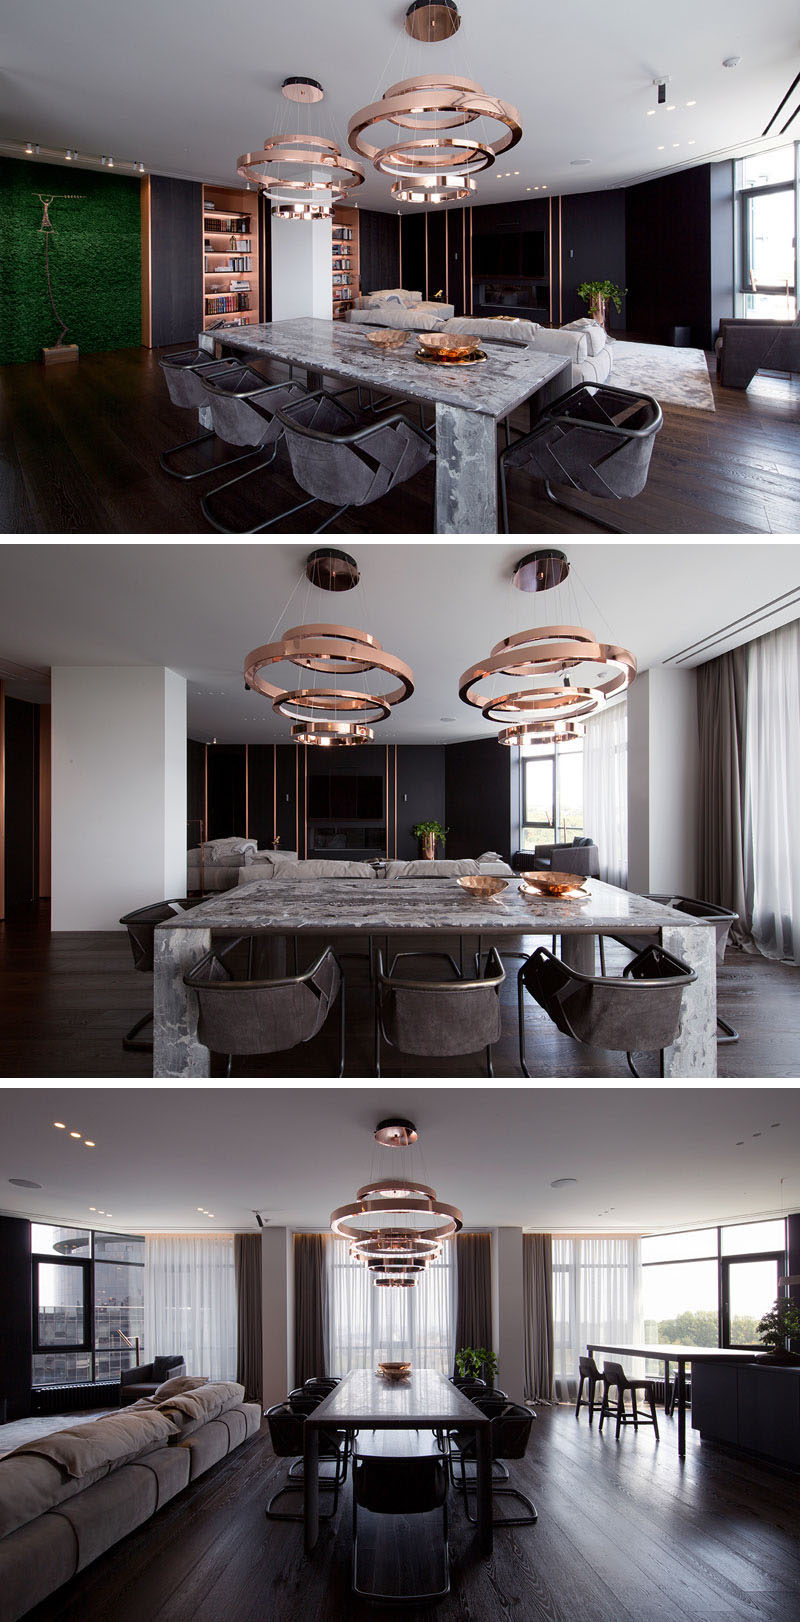 Two sculptural copper pendant lights hang above the dining table to anchor it in the open space of this modern apartment. #DiningRoom #CopperLighting #InteriorDesign